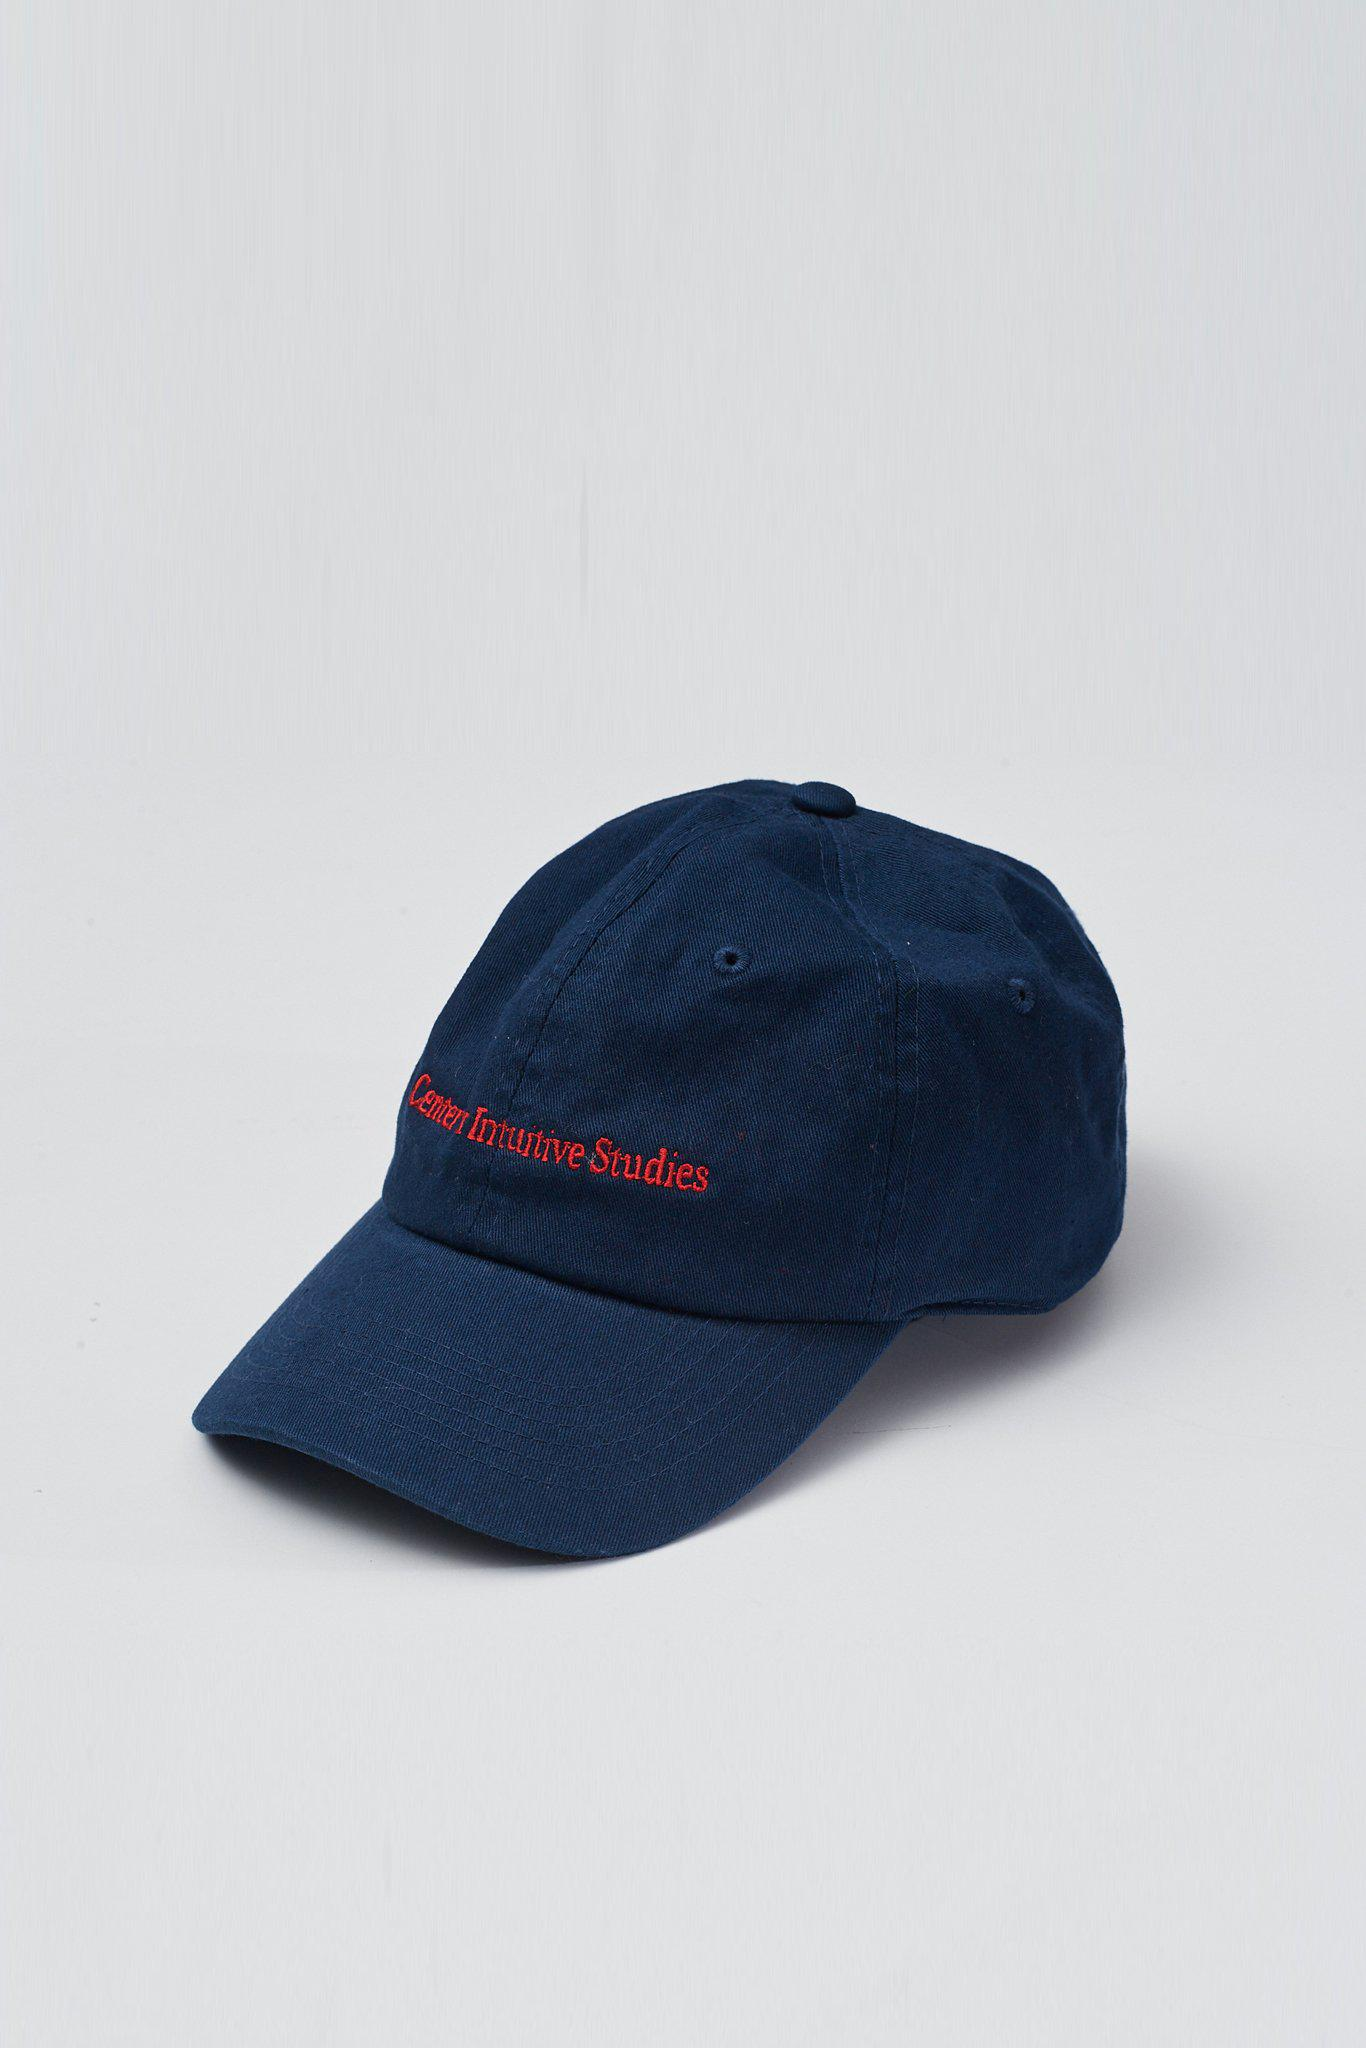 1dd483dd9ae Lyst - Assembly Center For Intuitive Studies Hat - Navy red in Blue ...